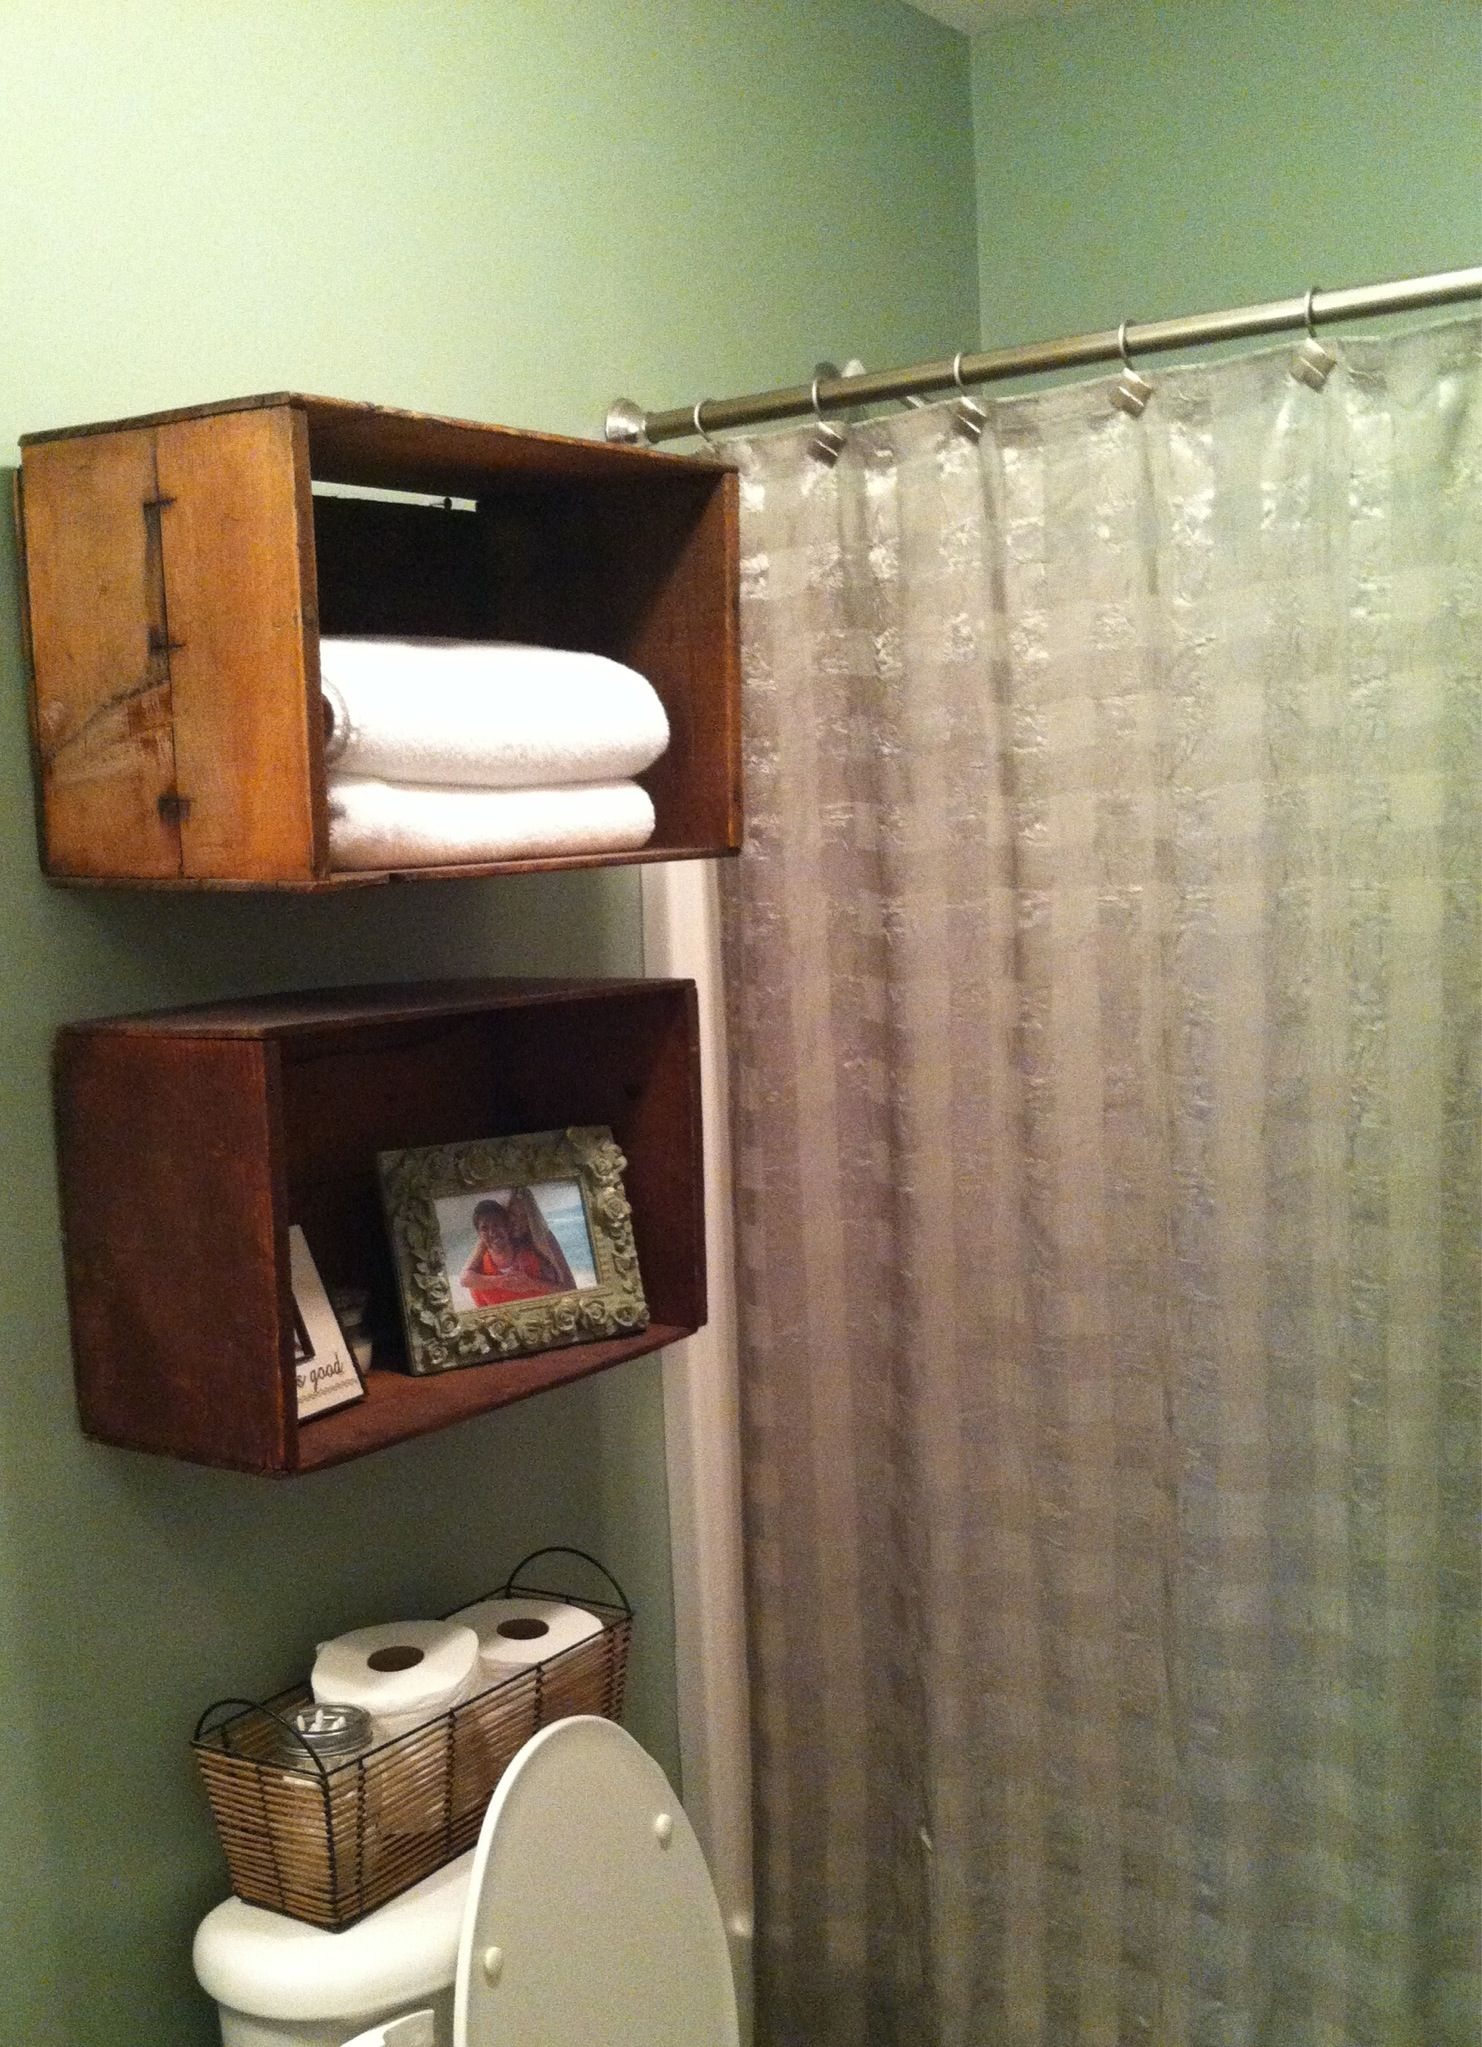 Bathroom Shelves Over Toilet Elegant